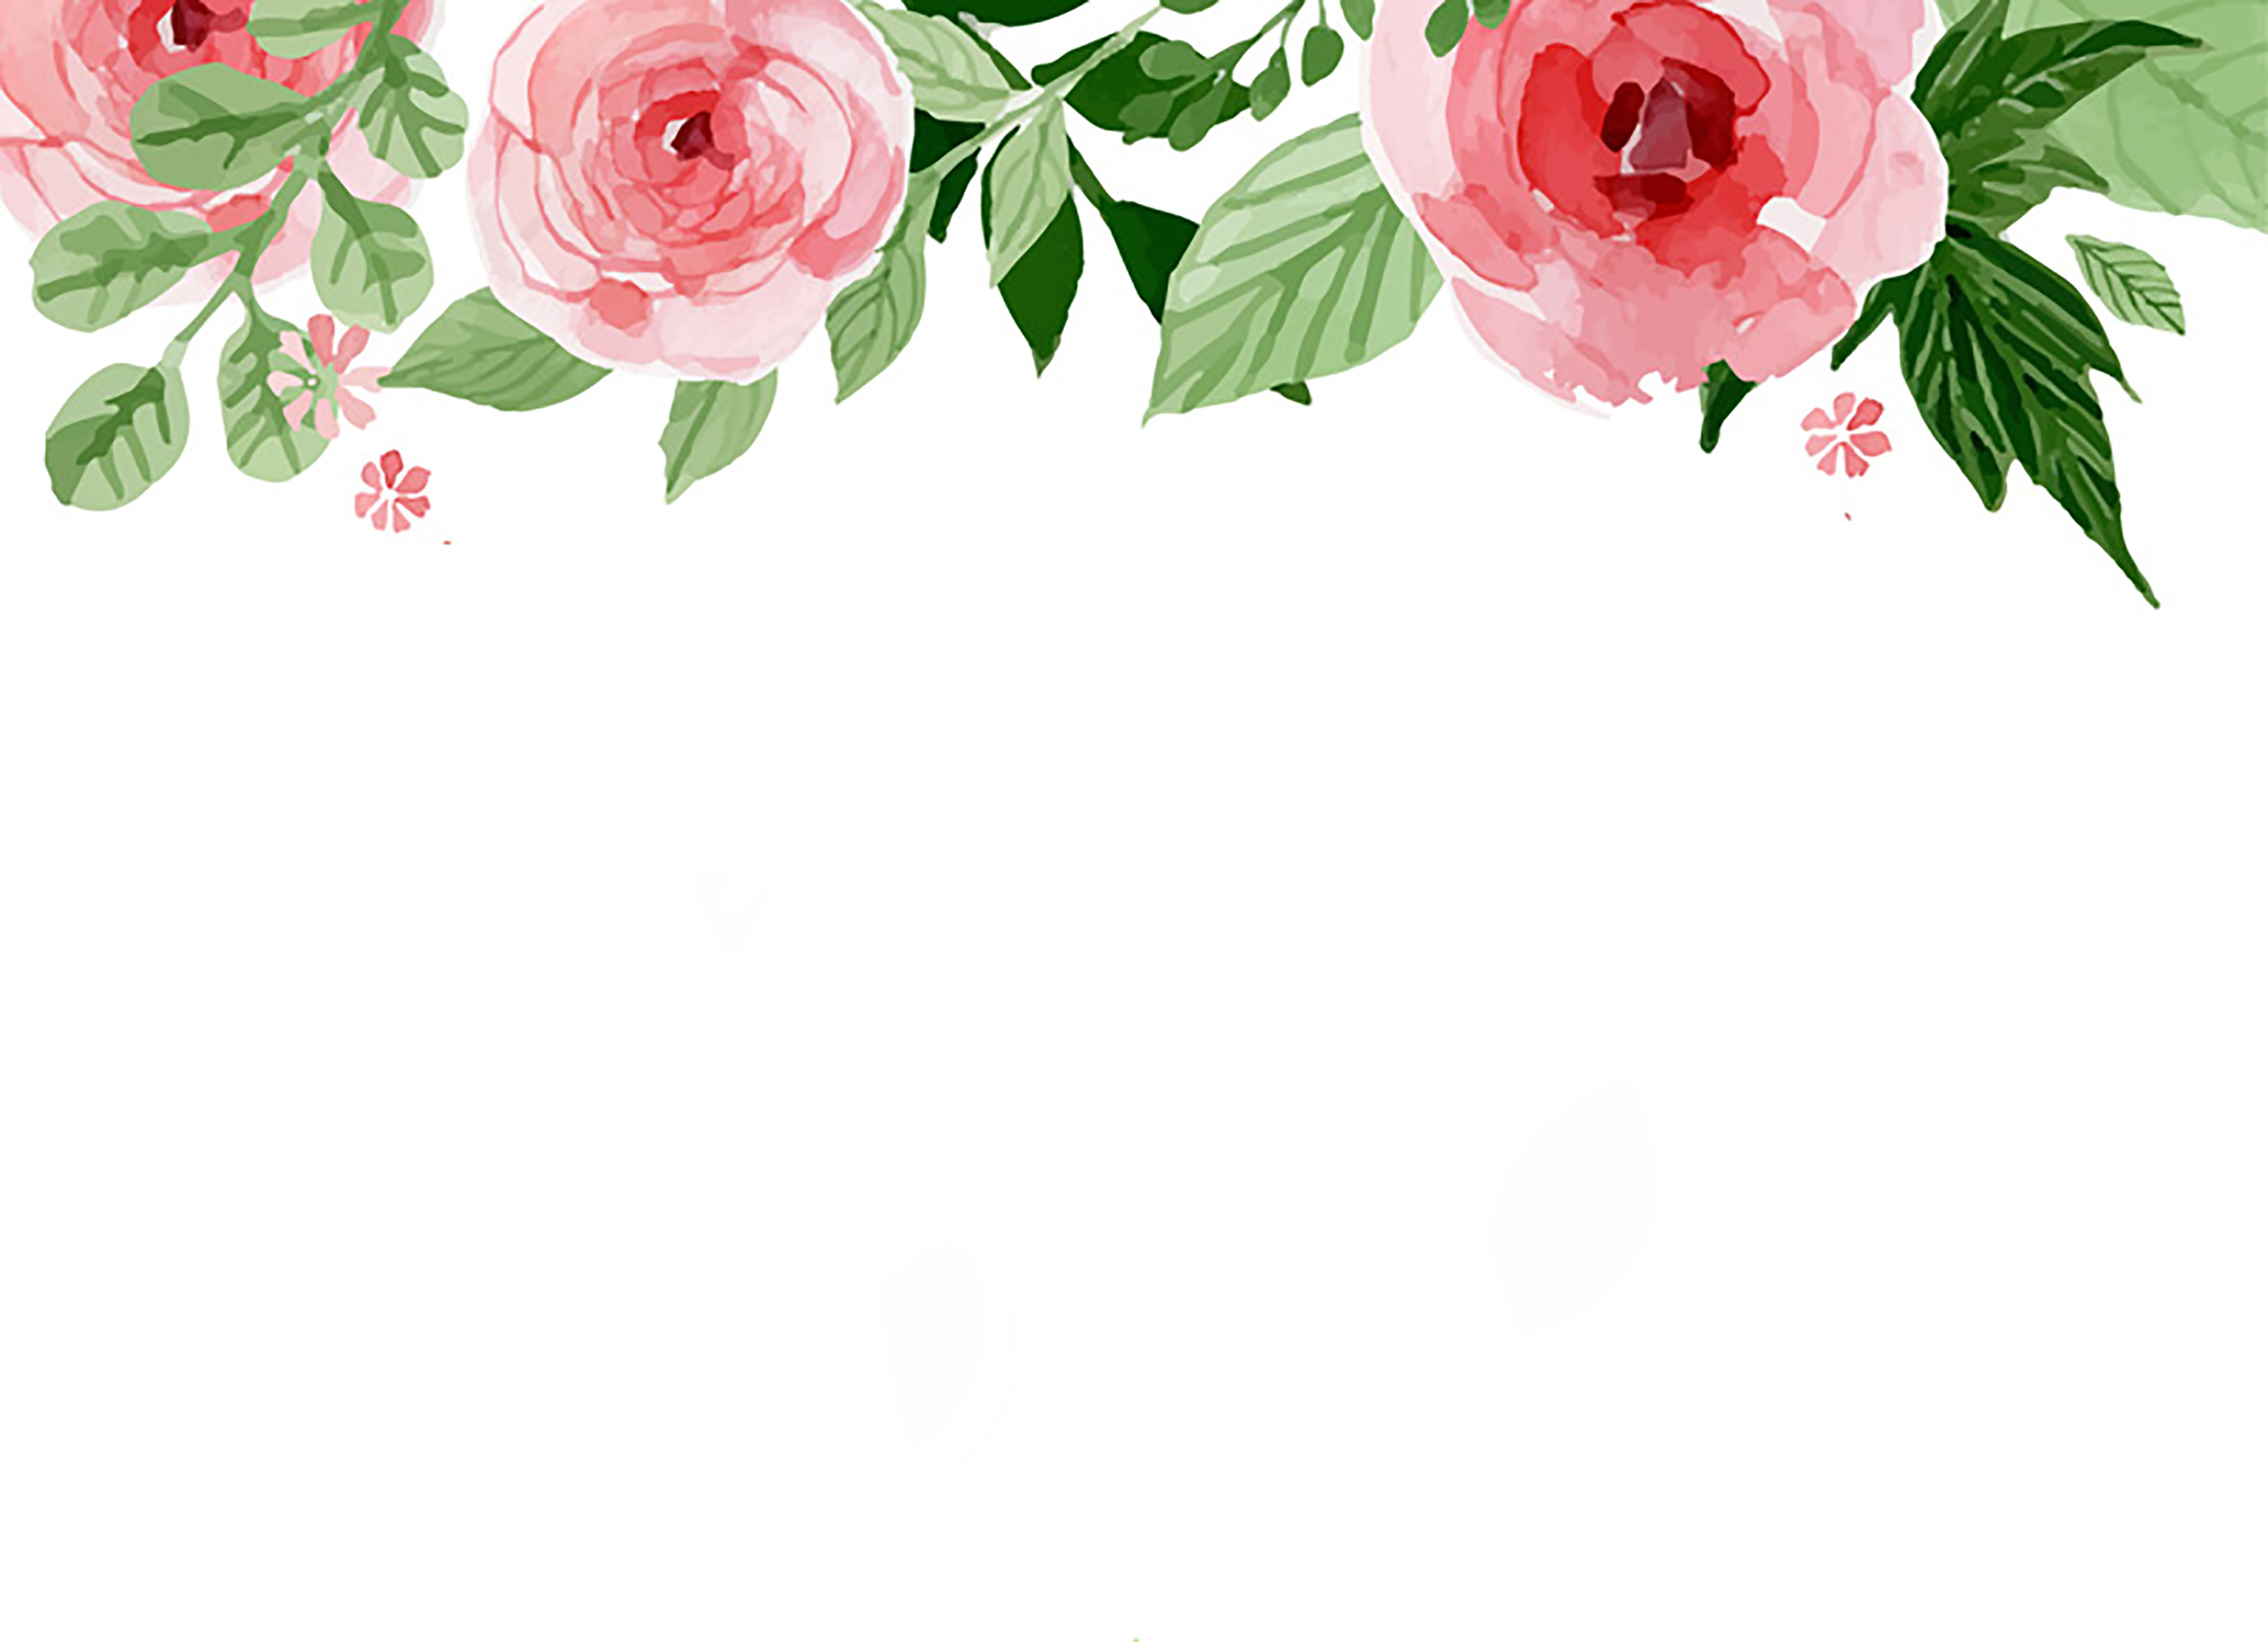 aquarelle floral fleur section contexte simple aquarelle de fleurs flower image image de fond